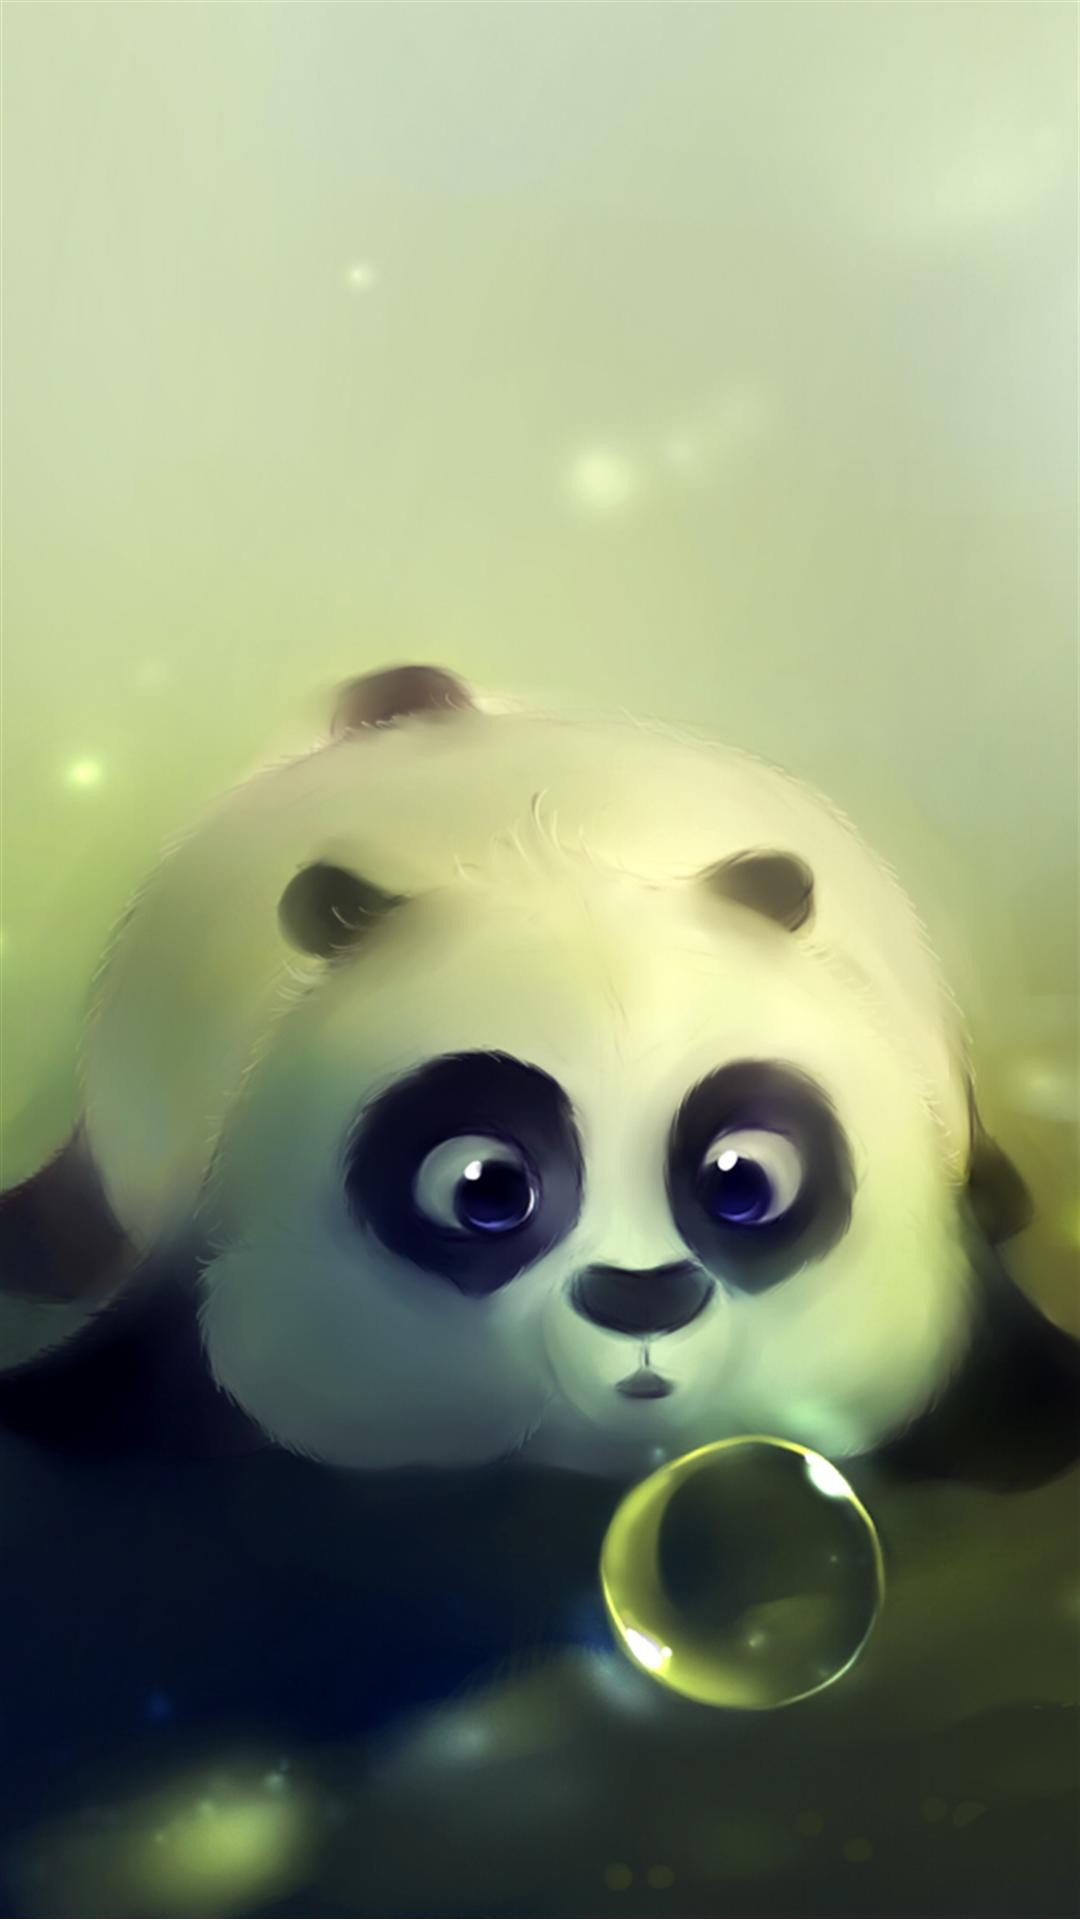 Cute Panda Bubble iPhone 6 Plus HD Wallpaper